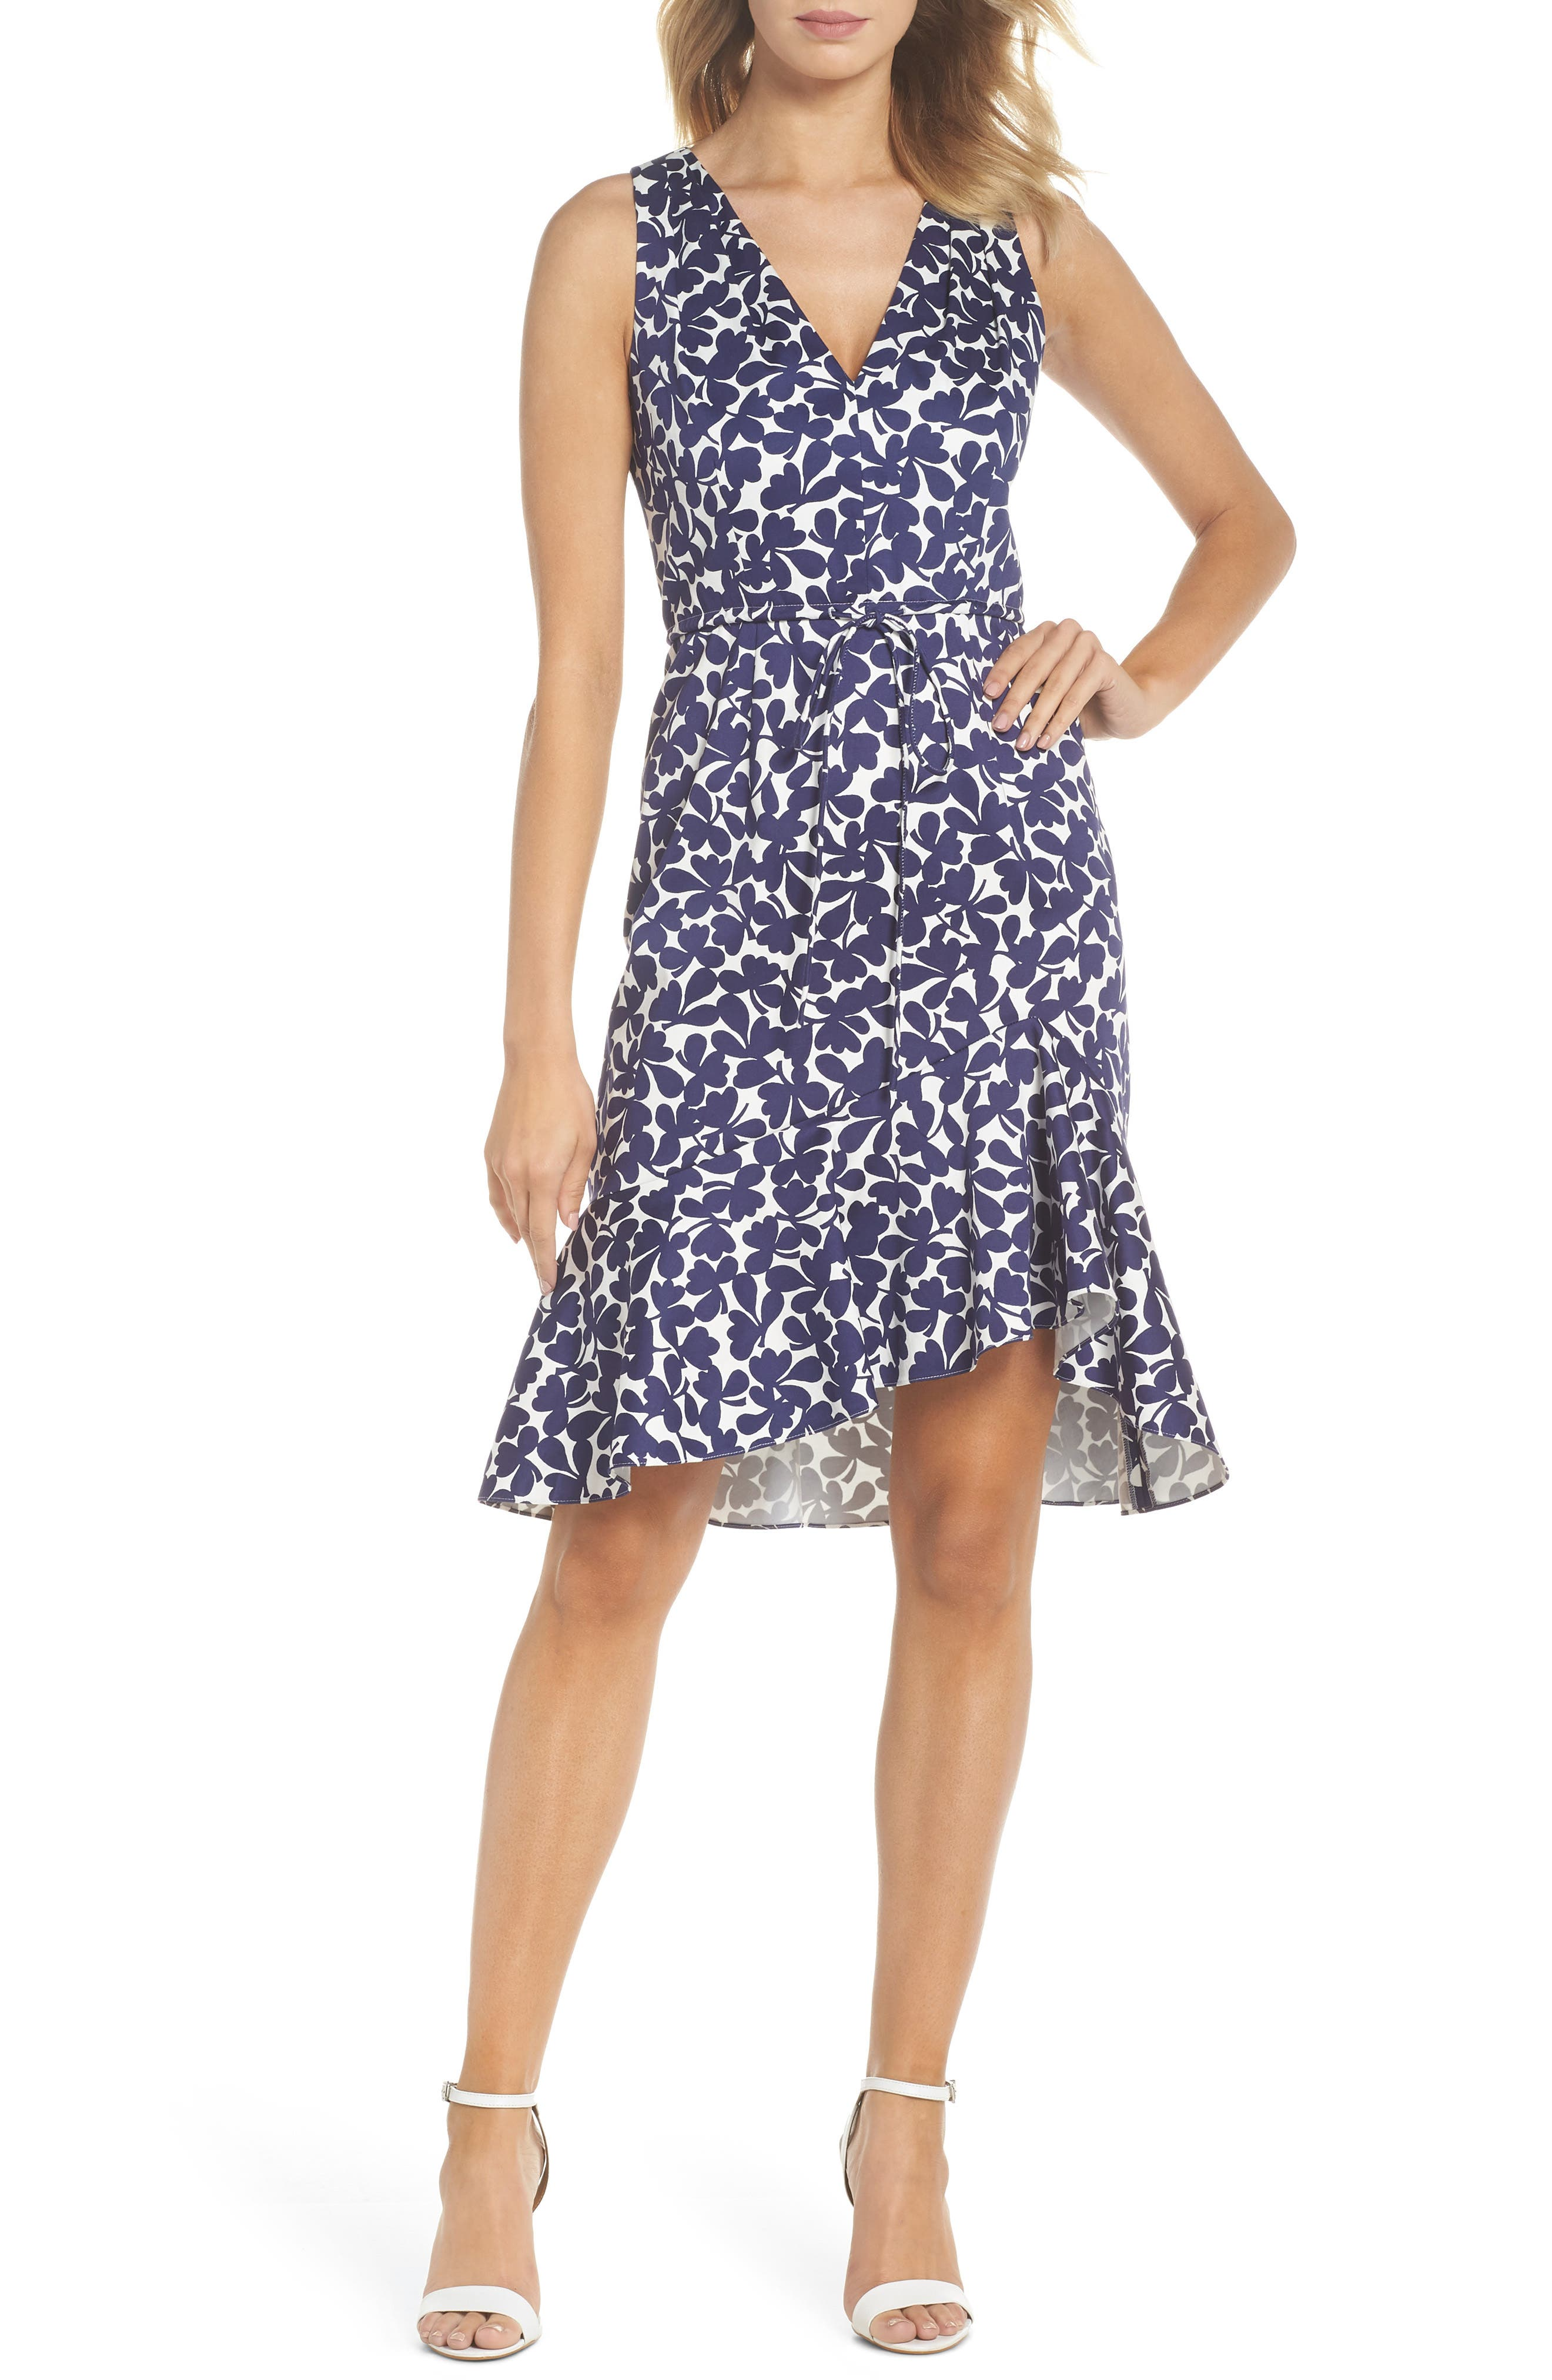 Lady Luck Print Cotton Sateen Dress,                             Main thumbnail 1, color,                             Navy/ Ivory